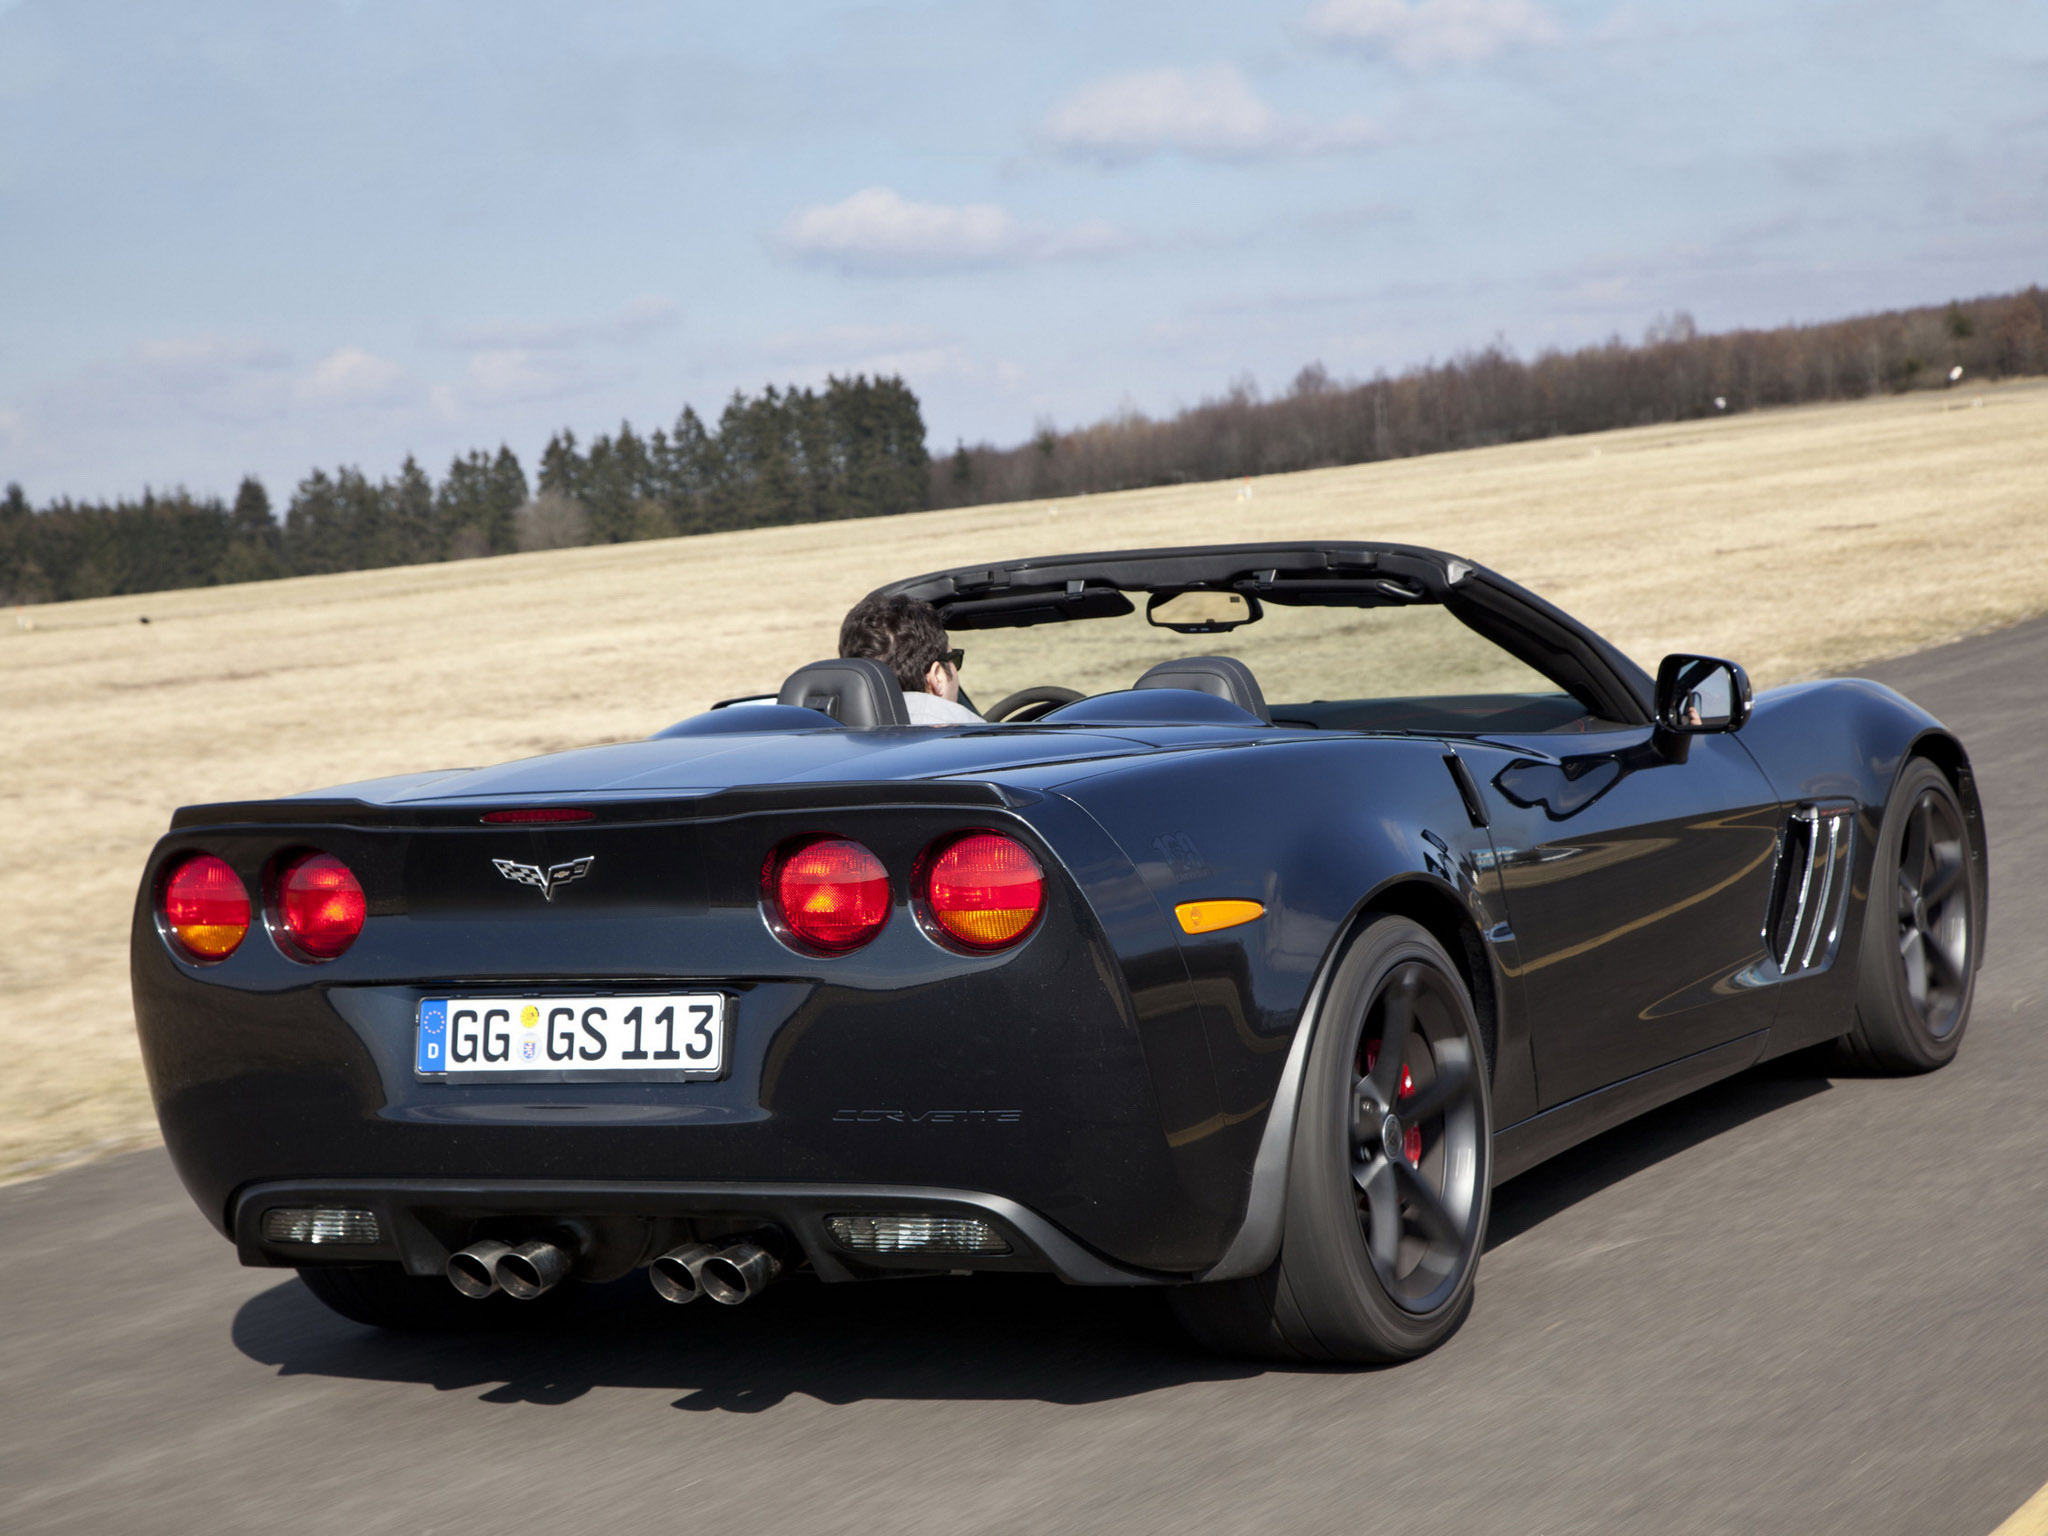 2010 Chevrolet Corvette Grand Sport Convertible muscle supercar